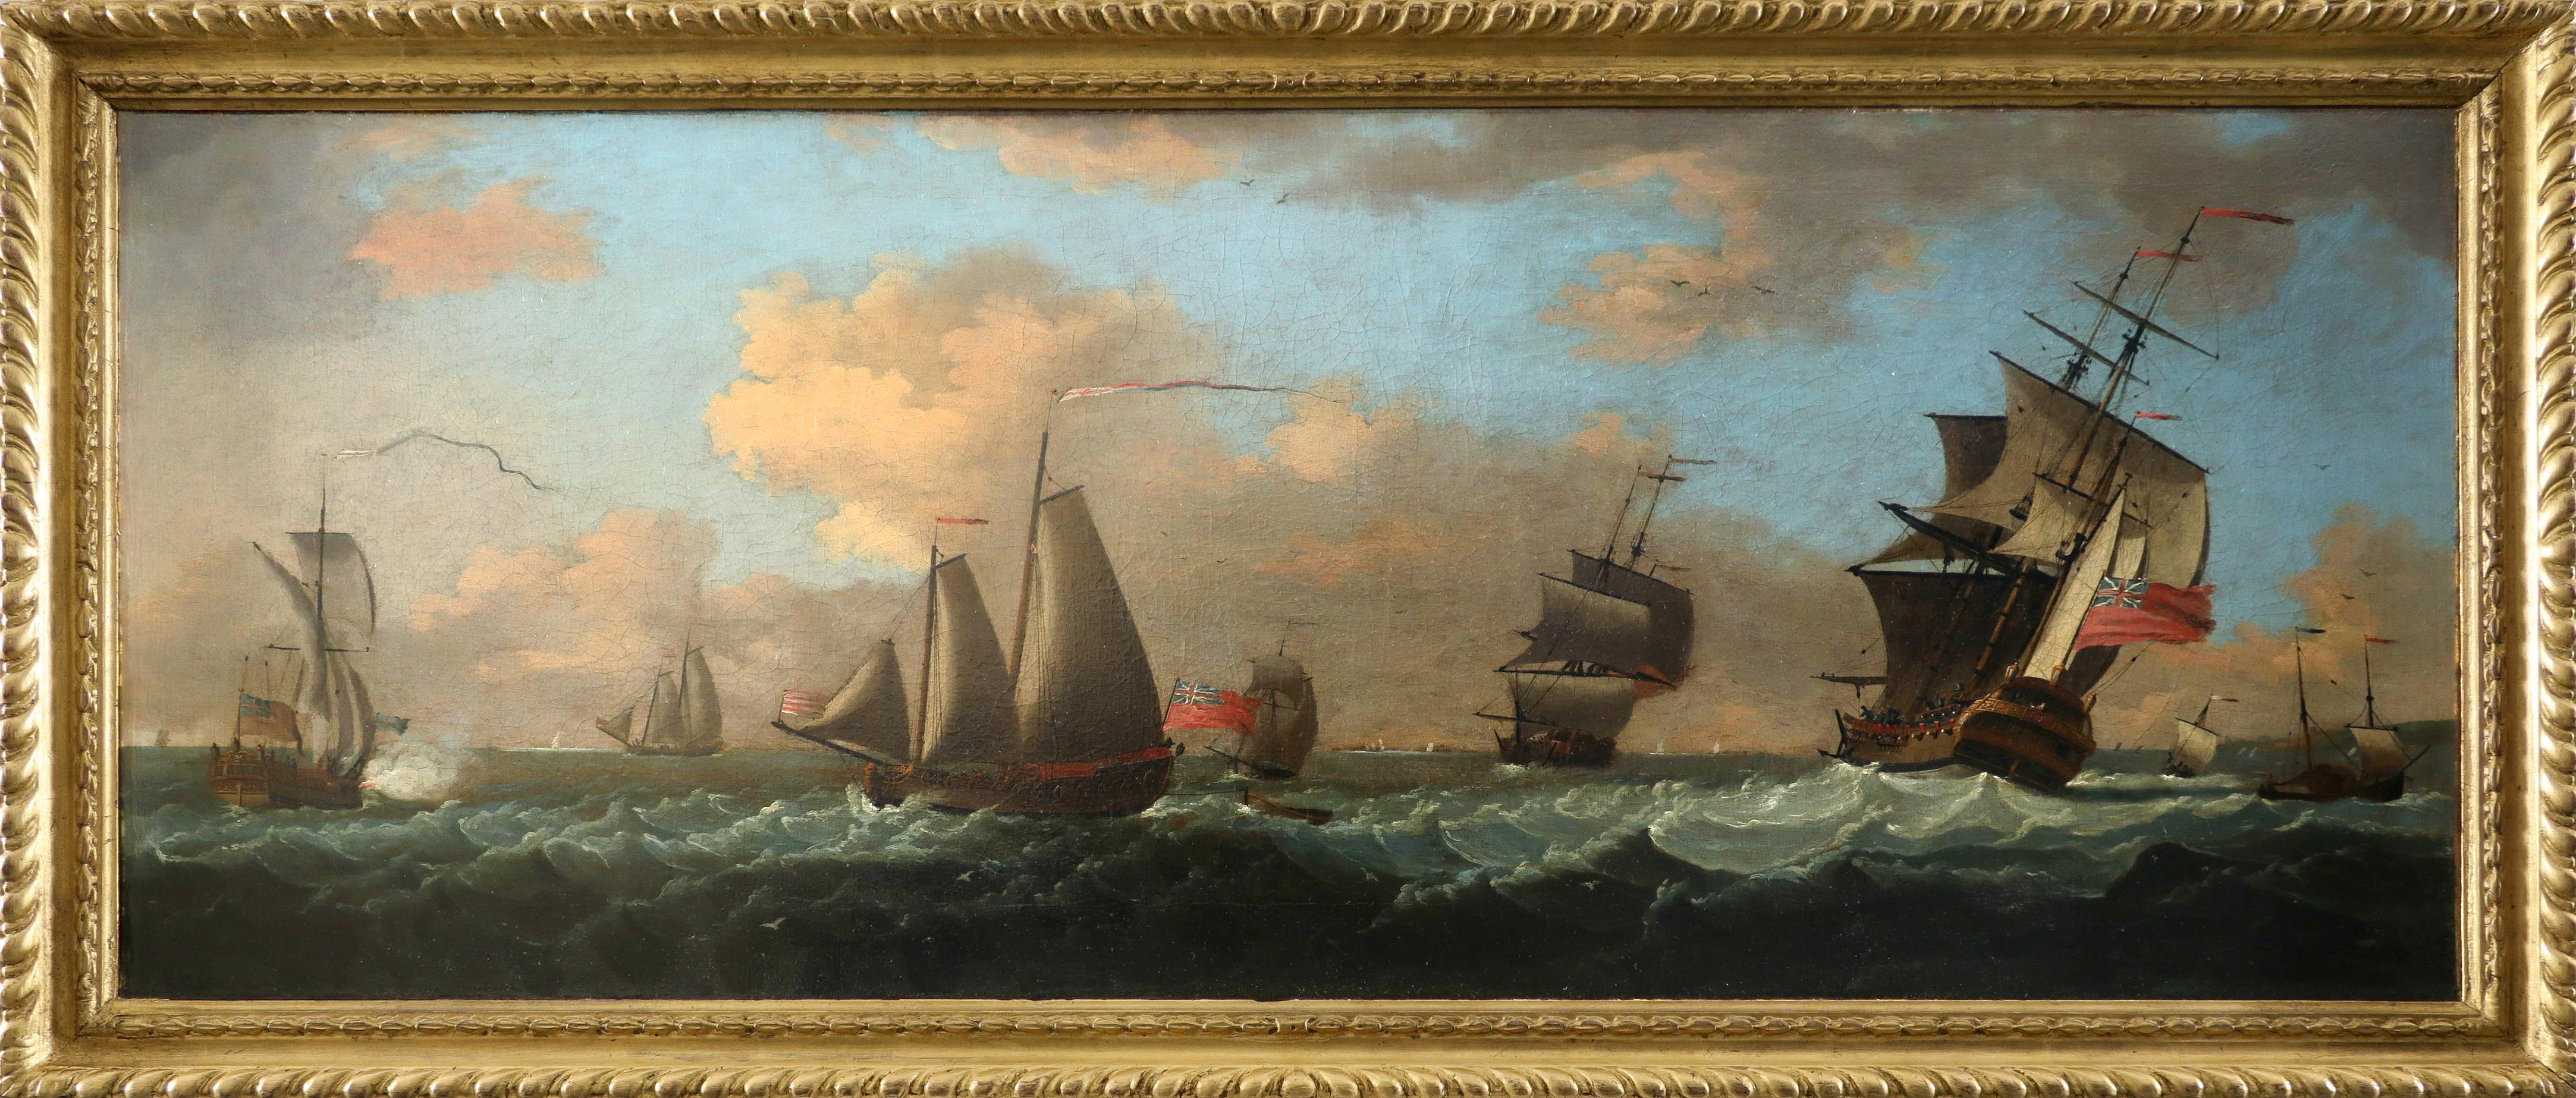 Francis Swaine (1725-1782) An admiral yacht, man-o-war and other ships in coastal waters Oil on - Image 2 of 3